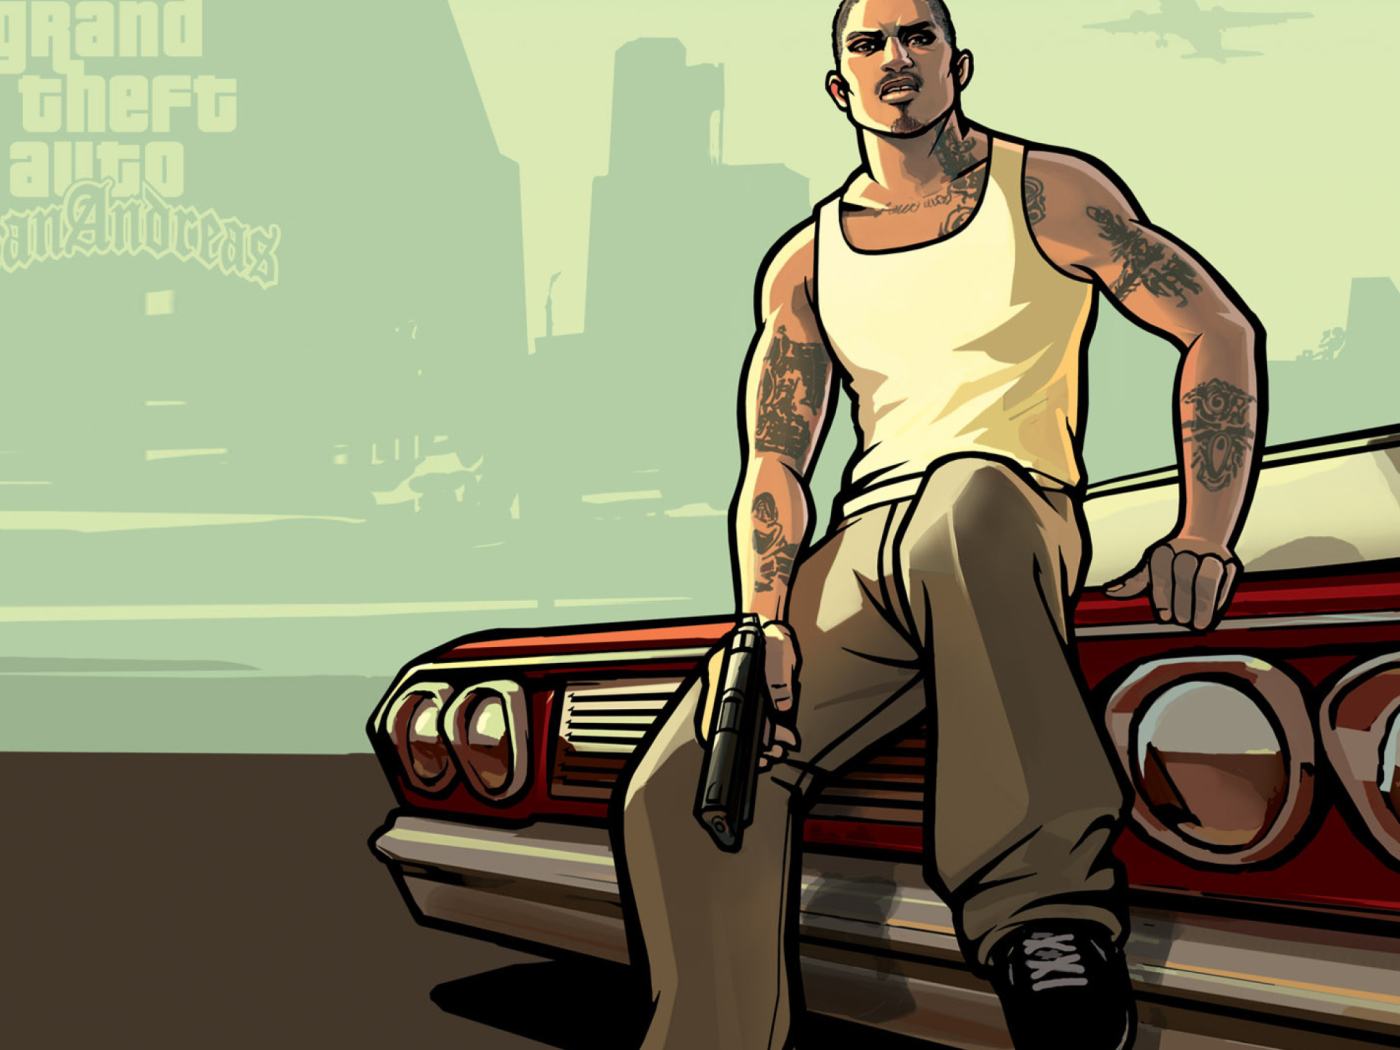 Gta San Andreas wallpaper 1400x1050